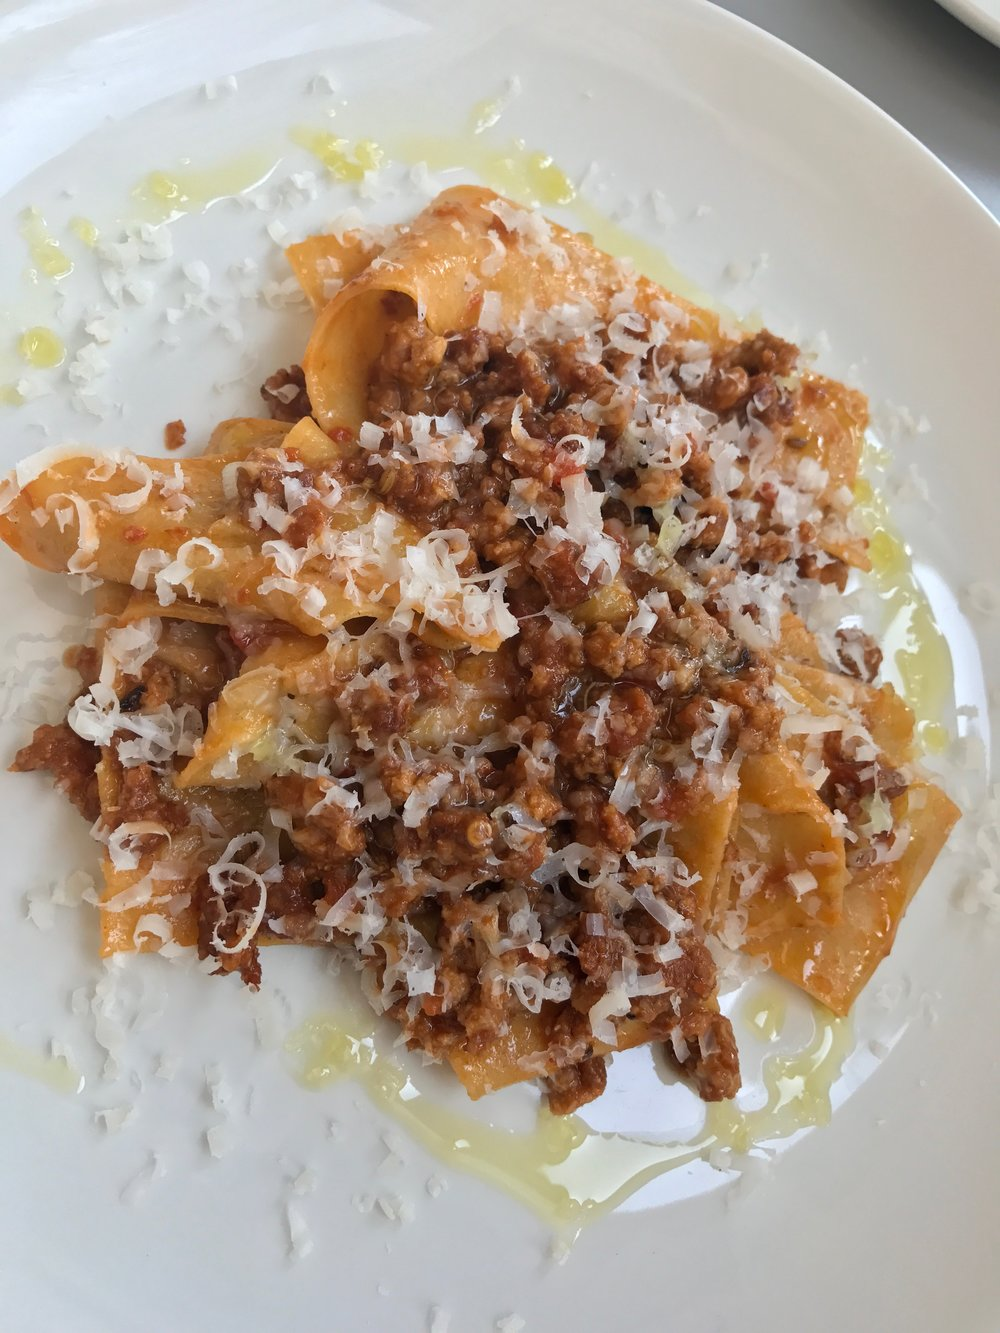 Pork and fennel ragu pappardelle